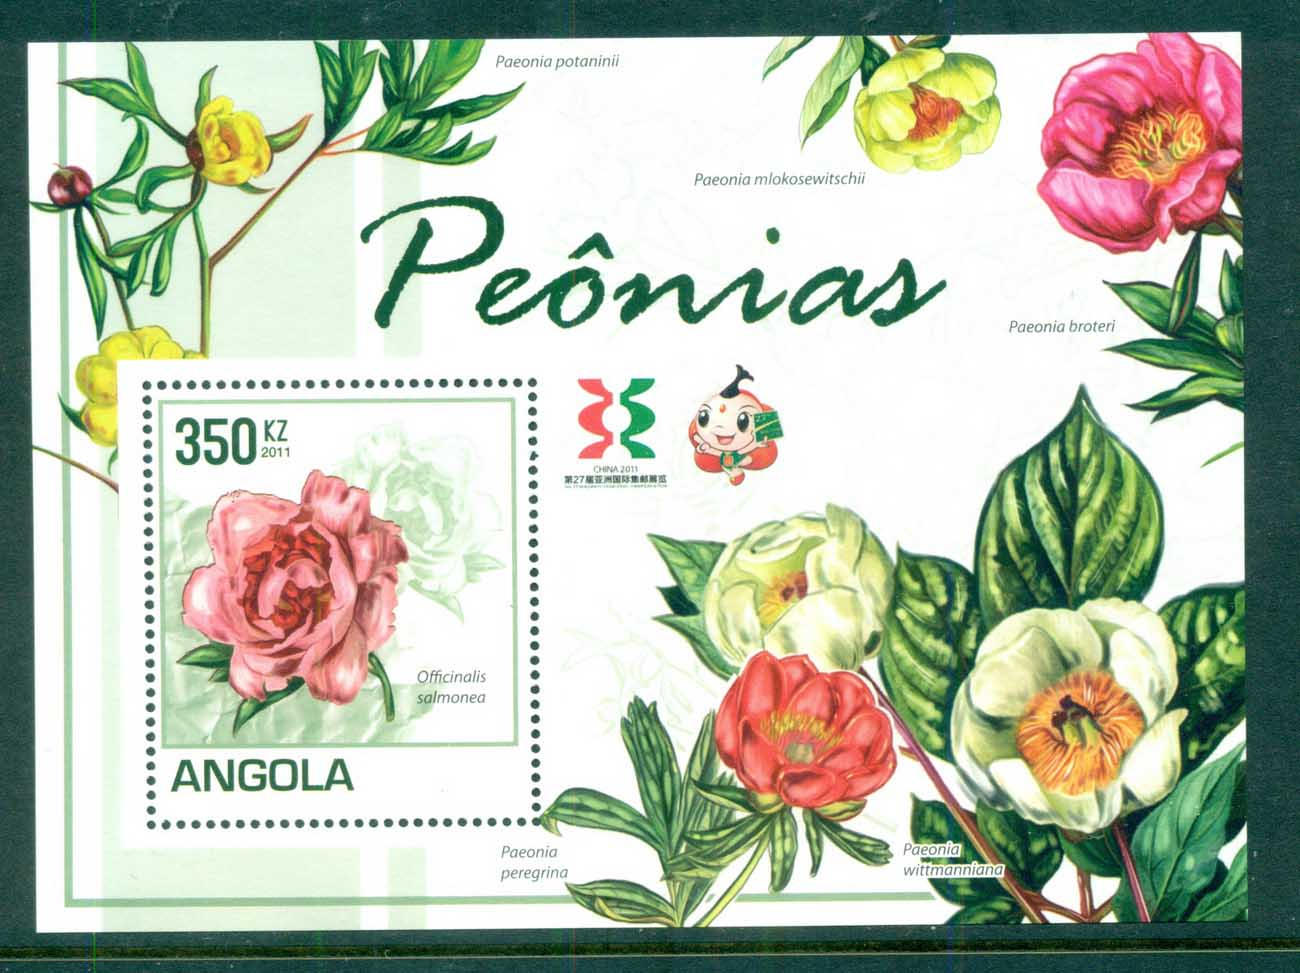 Angola 2011 Flora, Flower, Plant,Peonies MS MUH AN001